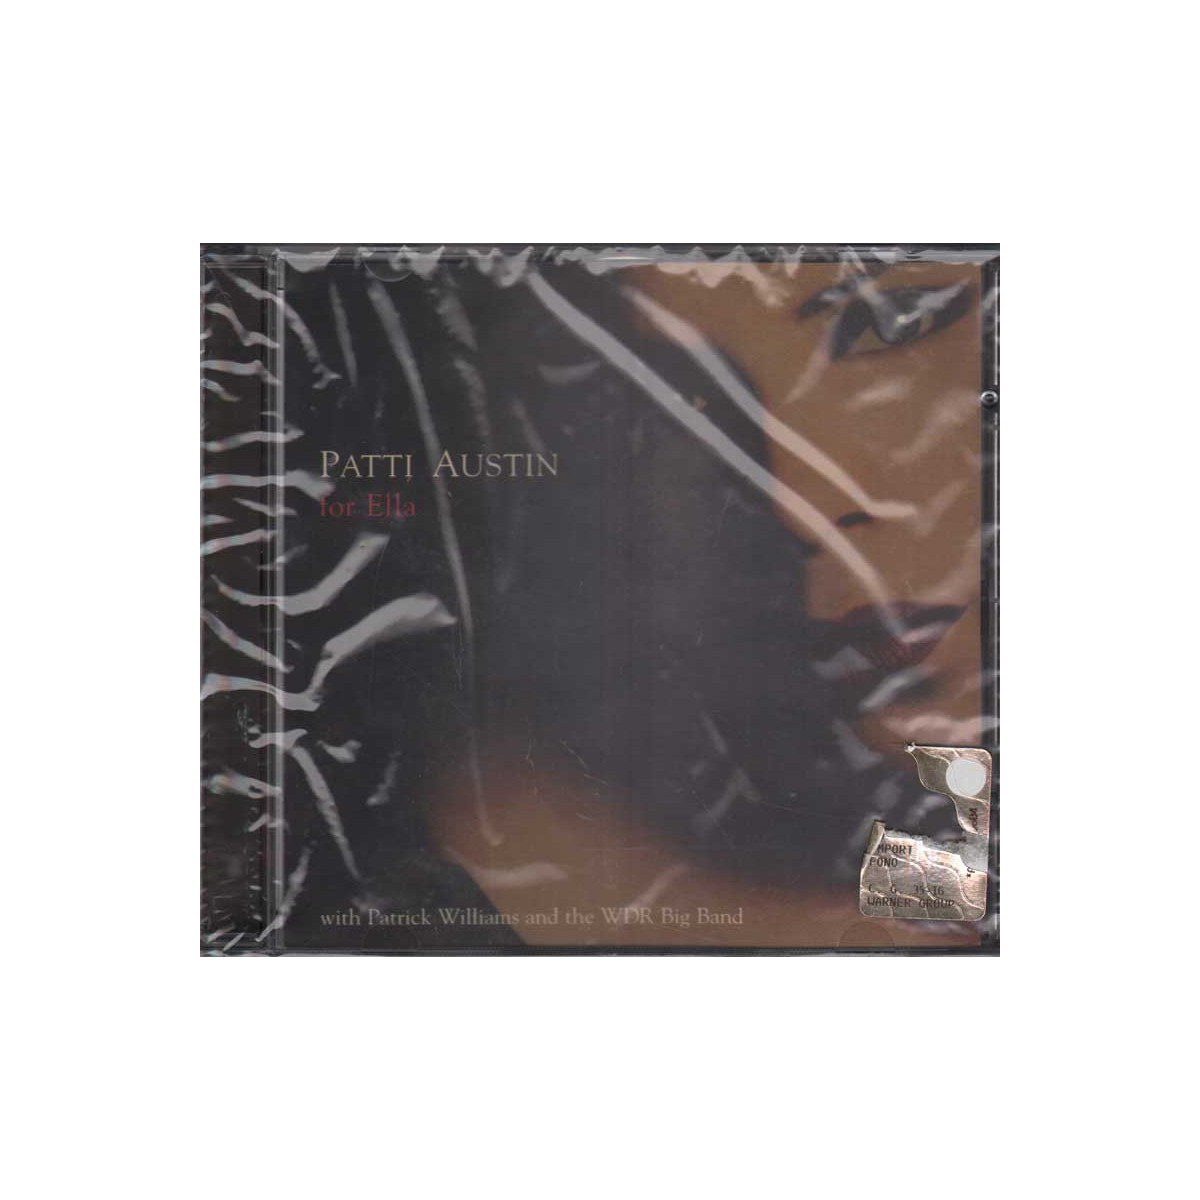 Patti Austin CD For Ella Nuovo Sigillato 0013431750321